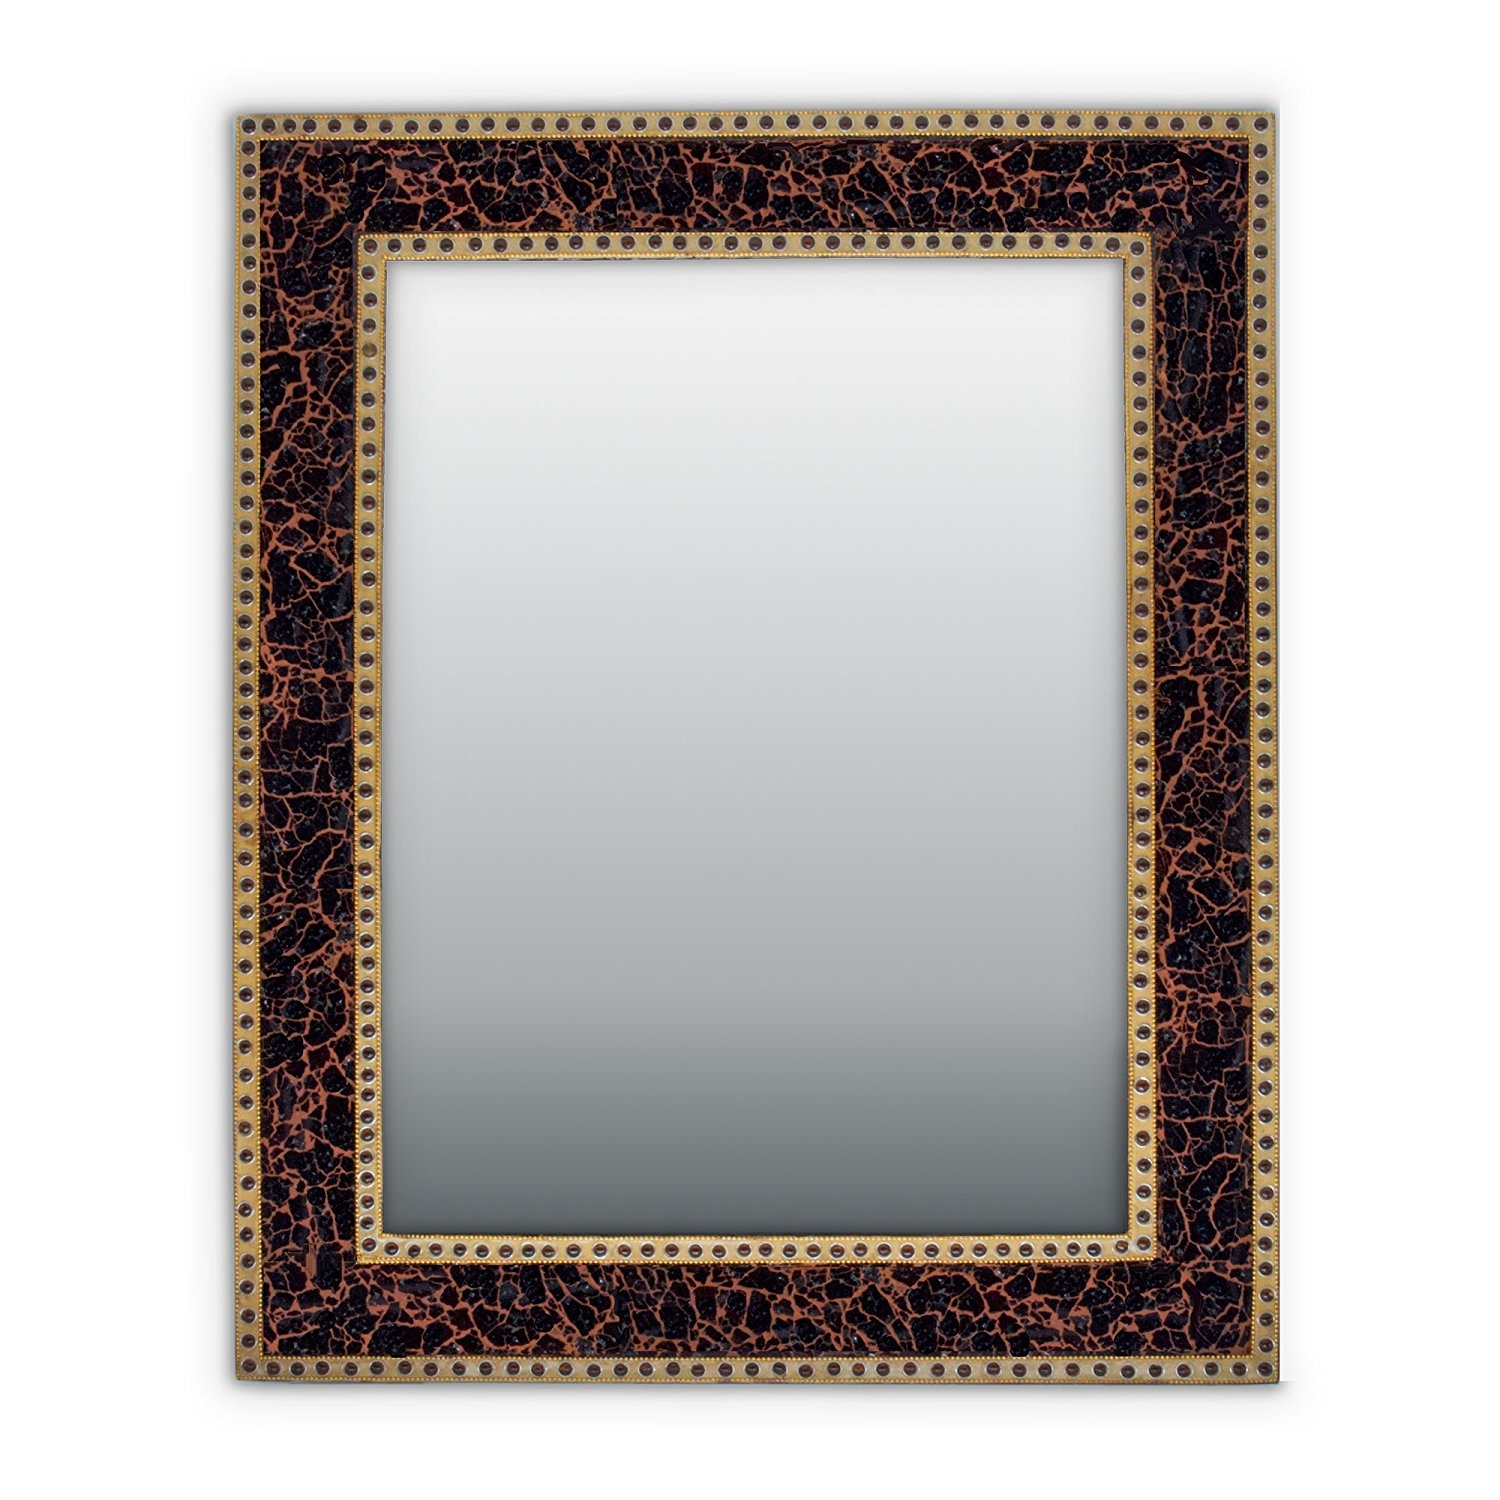 Amazon Decorshore Mosaic 30×24 Crackled Glass Decorative Wall Pertaining To Large Ornate Silver Mirror (Image 1 of 15)